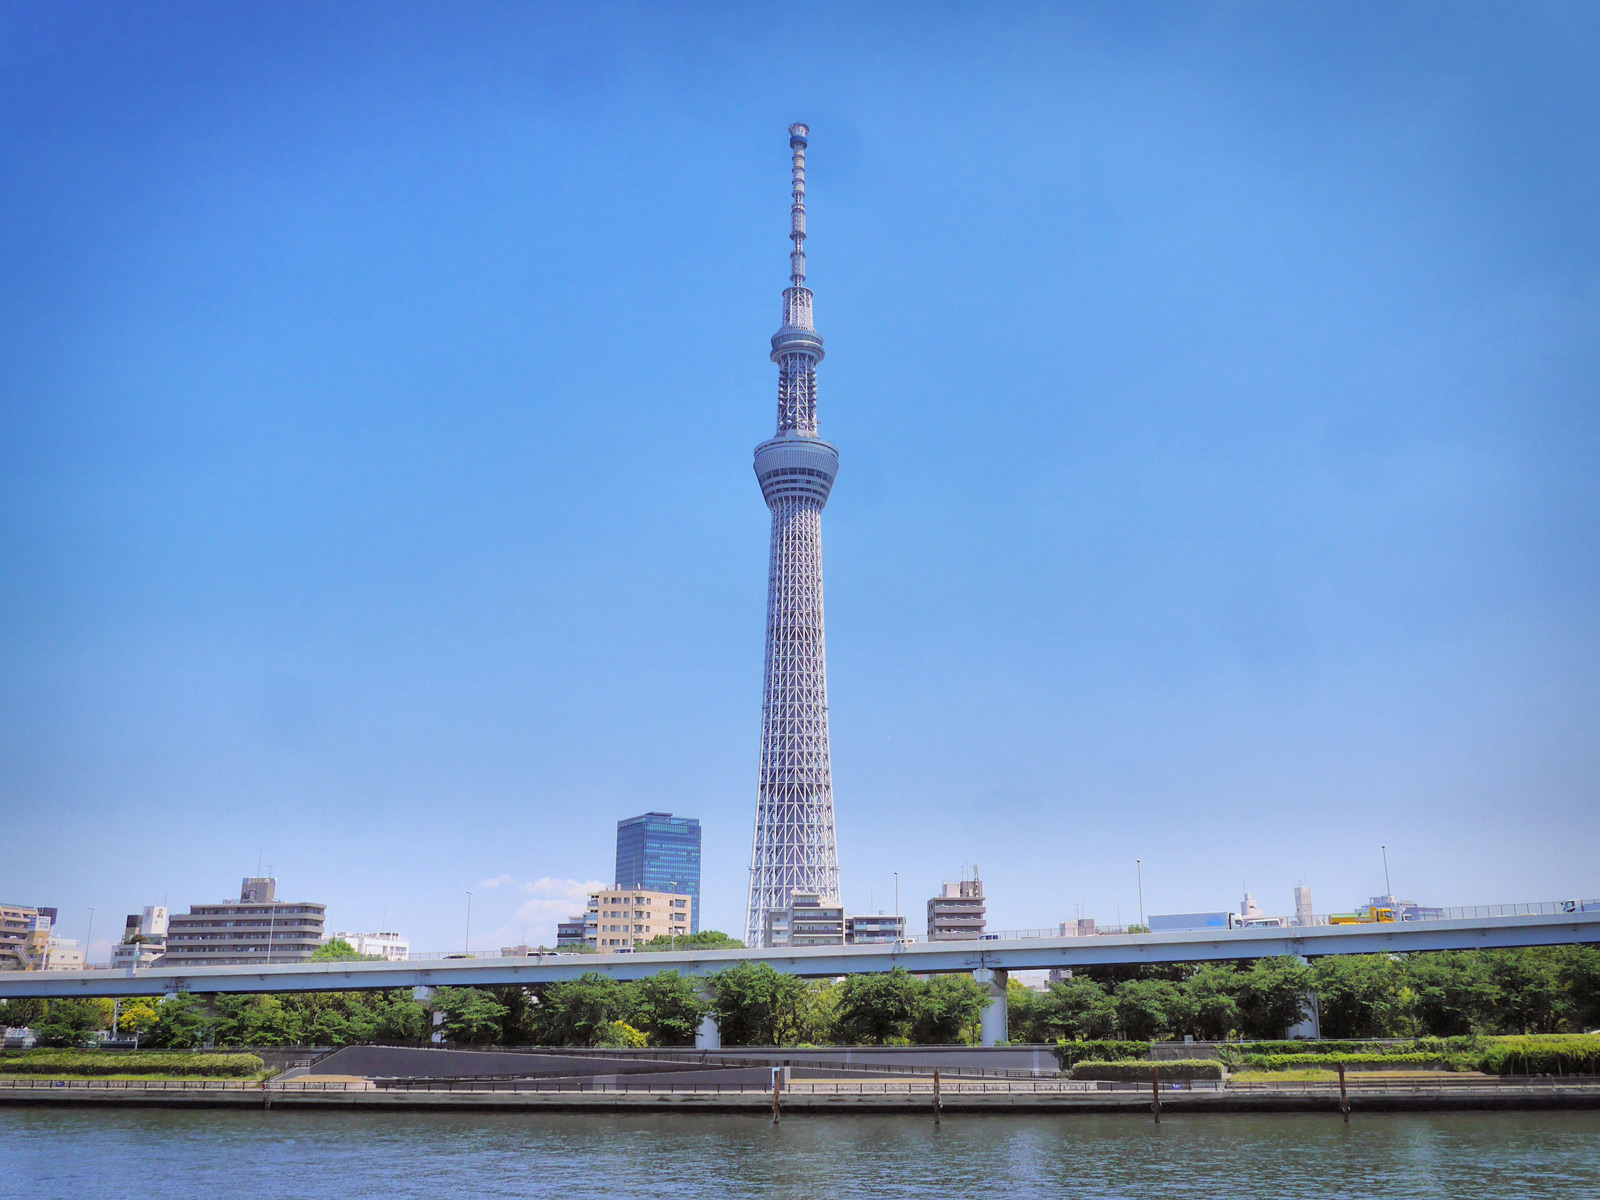 Cross the Sumida River to the World's Tallest Tower - Tokyo, Japan